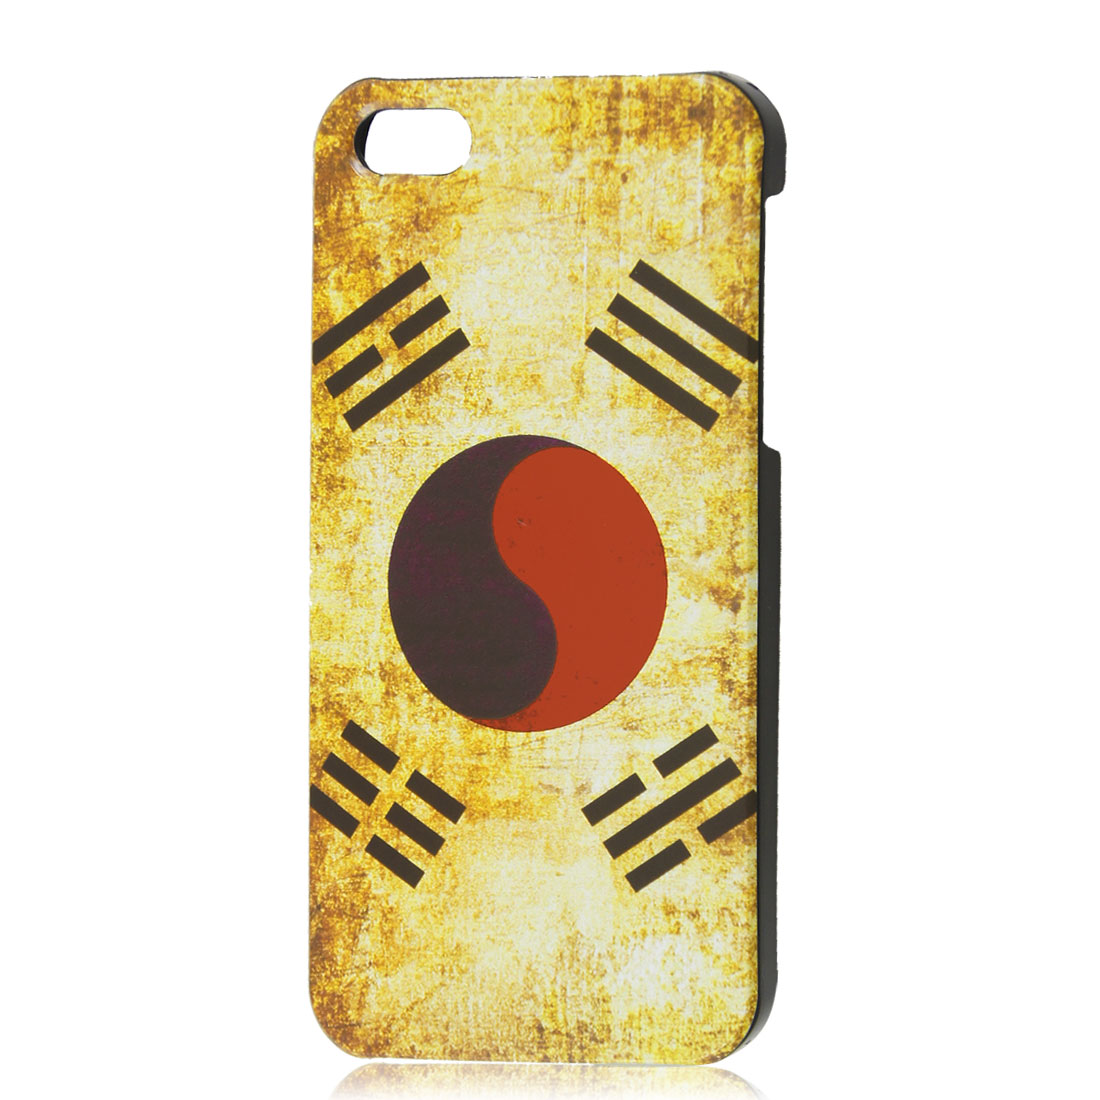 Retro Style South Korea National Flag Hard Case Back Cover Shell for iPhone 5 5G